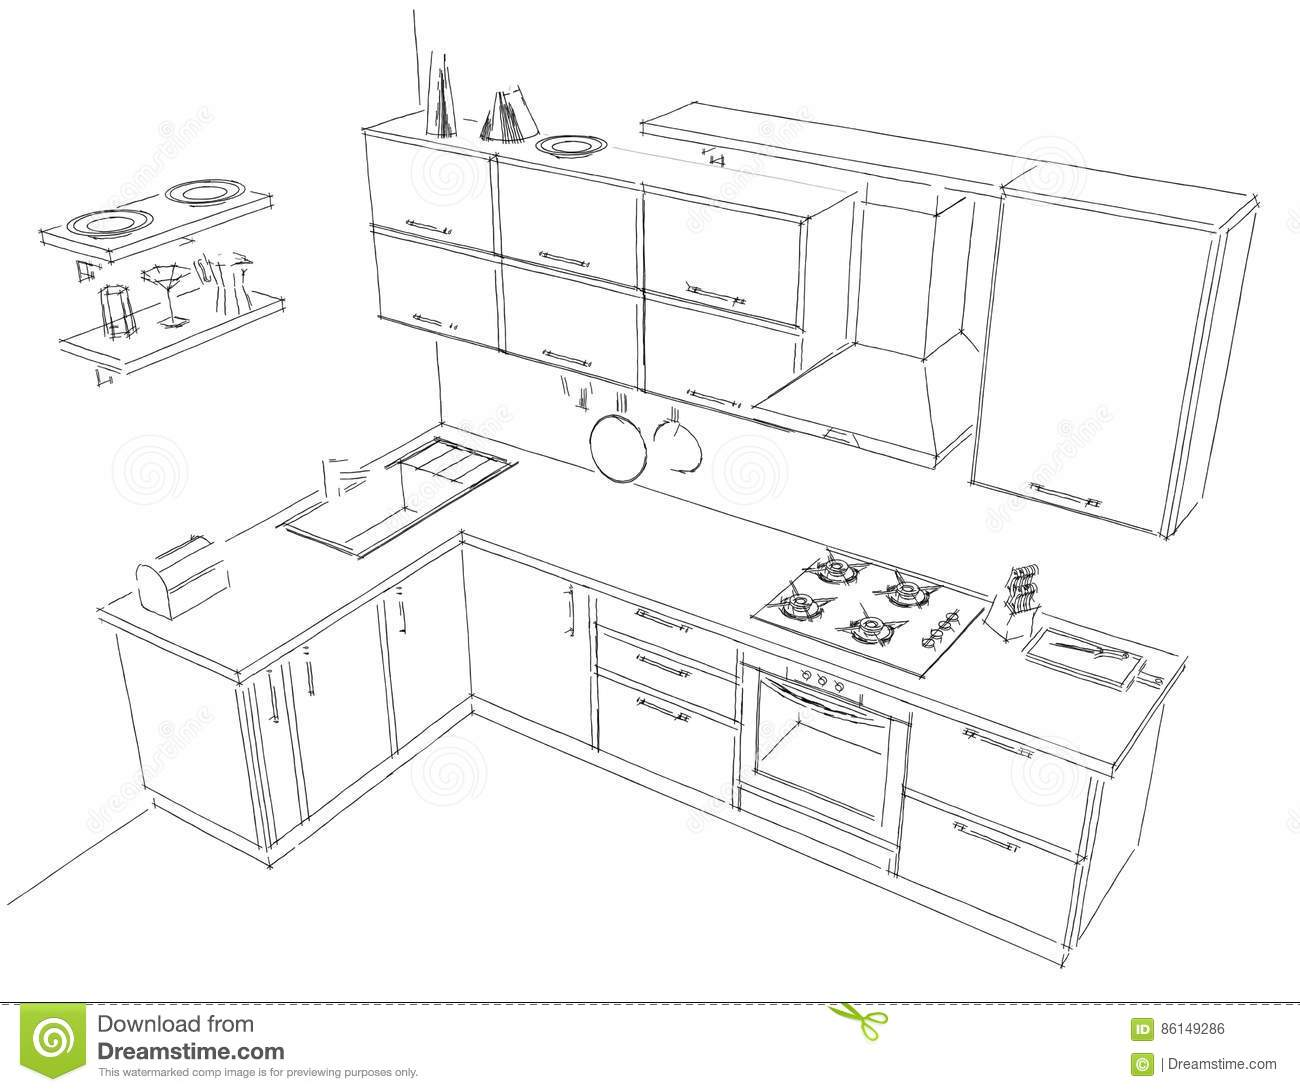 Dream Kitchen Design Drawing: Sketch Contour Drawing Of 3d Contemporary Corner Kitchen